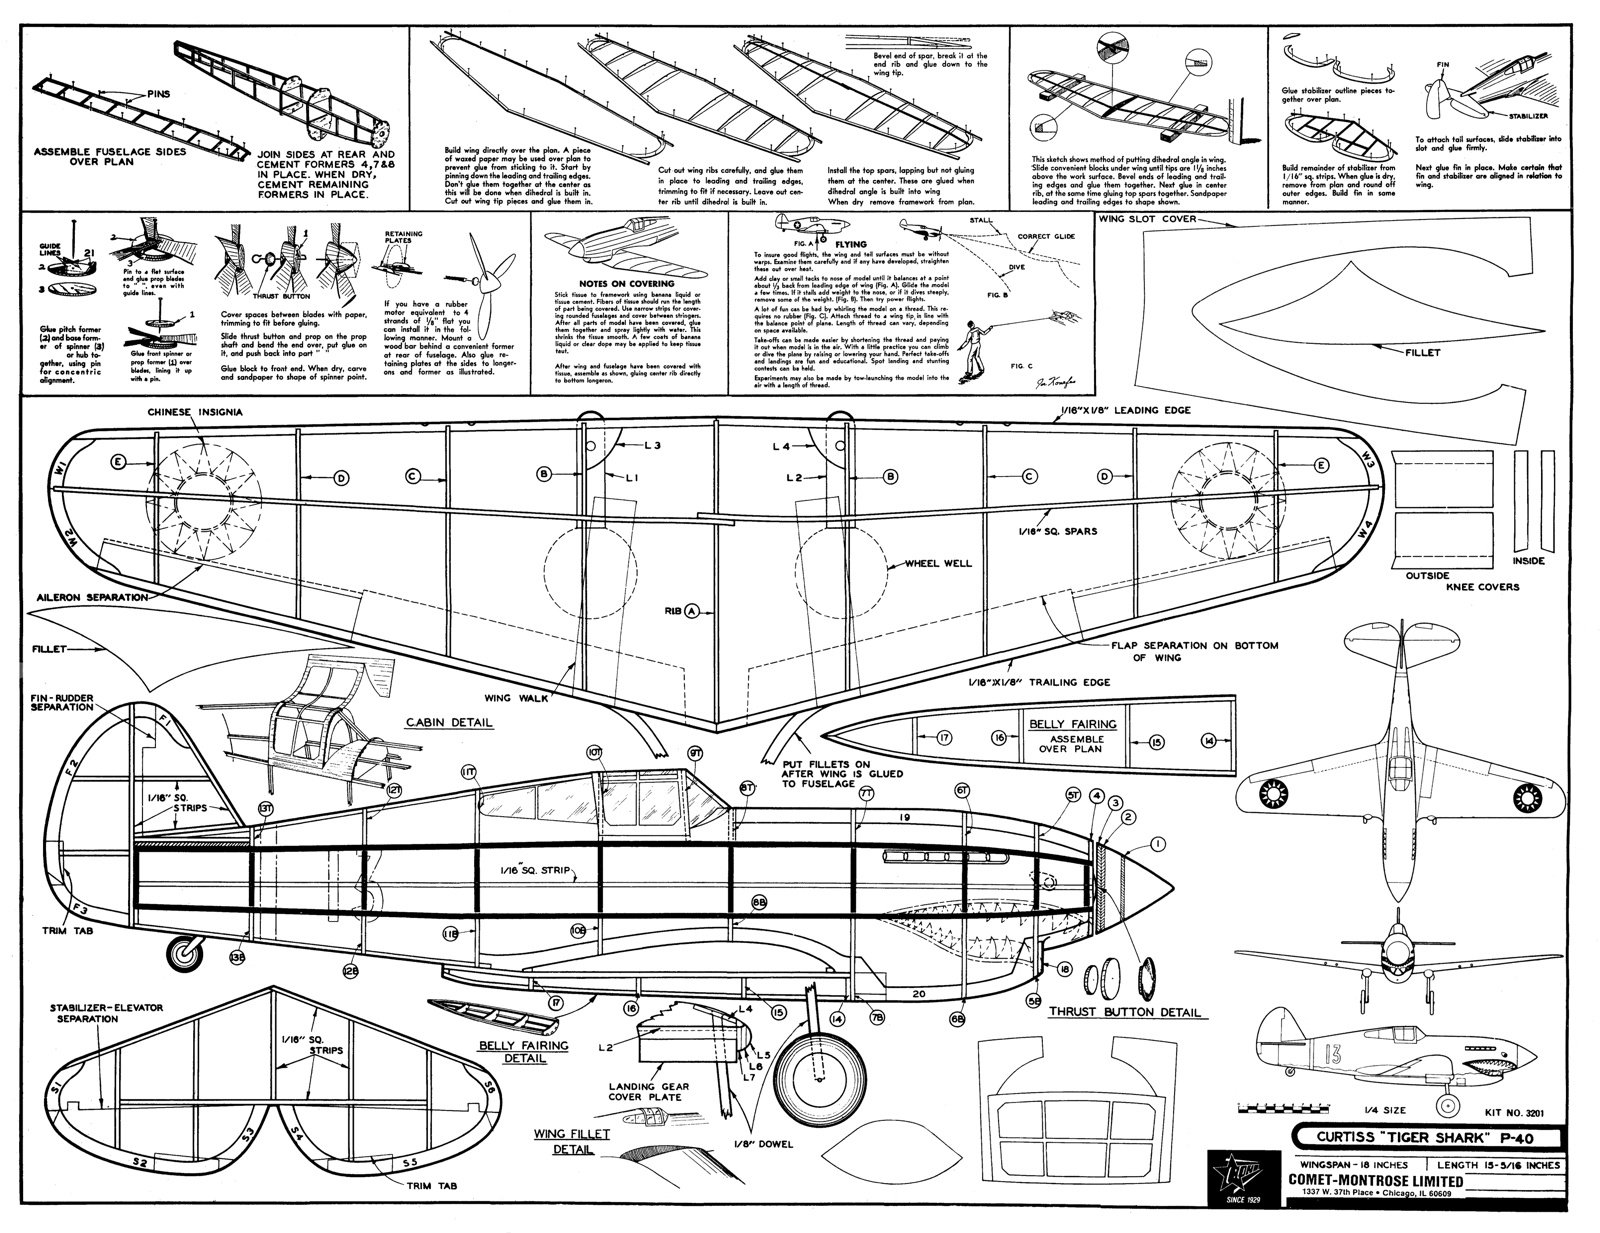 https://0201.nccdn.net/1_2/000/000/0d2/c43/Comet-P-40-kit-plan-and-parts-1600x1233.jpg